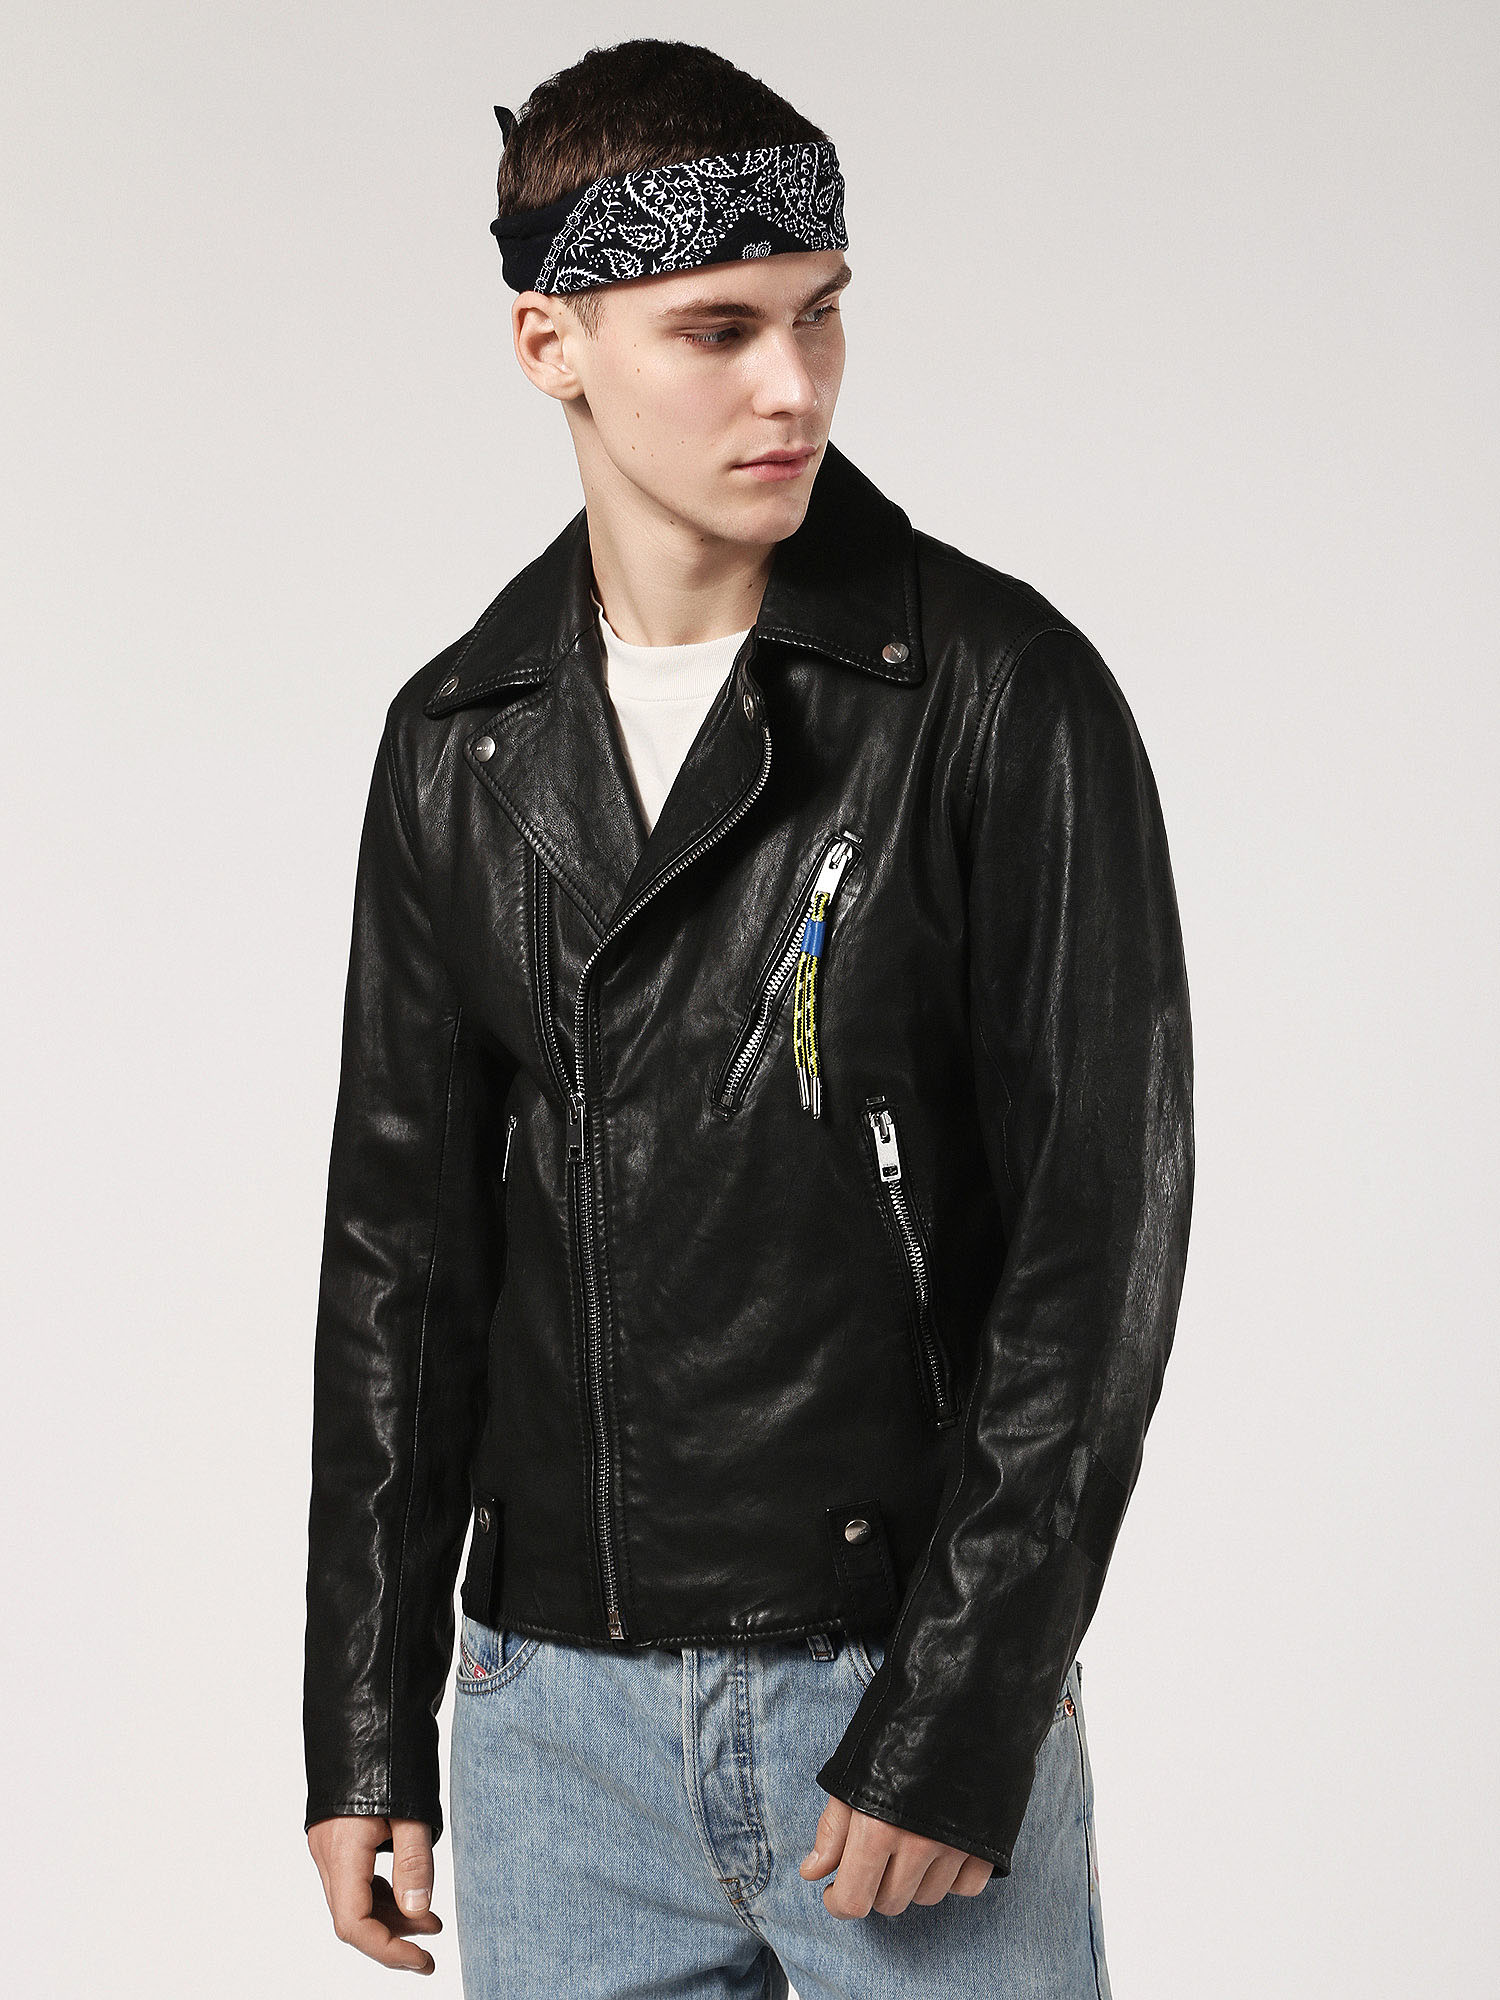 willcox men Men / jackets / leather jackets / l-willcox l-willcox leather jackets info close about the timeless motorcycle jacket, infused with diesel cool.